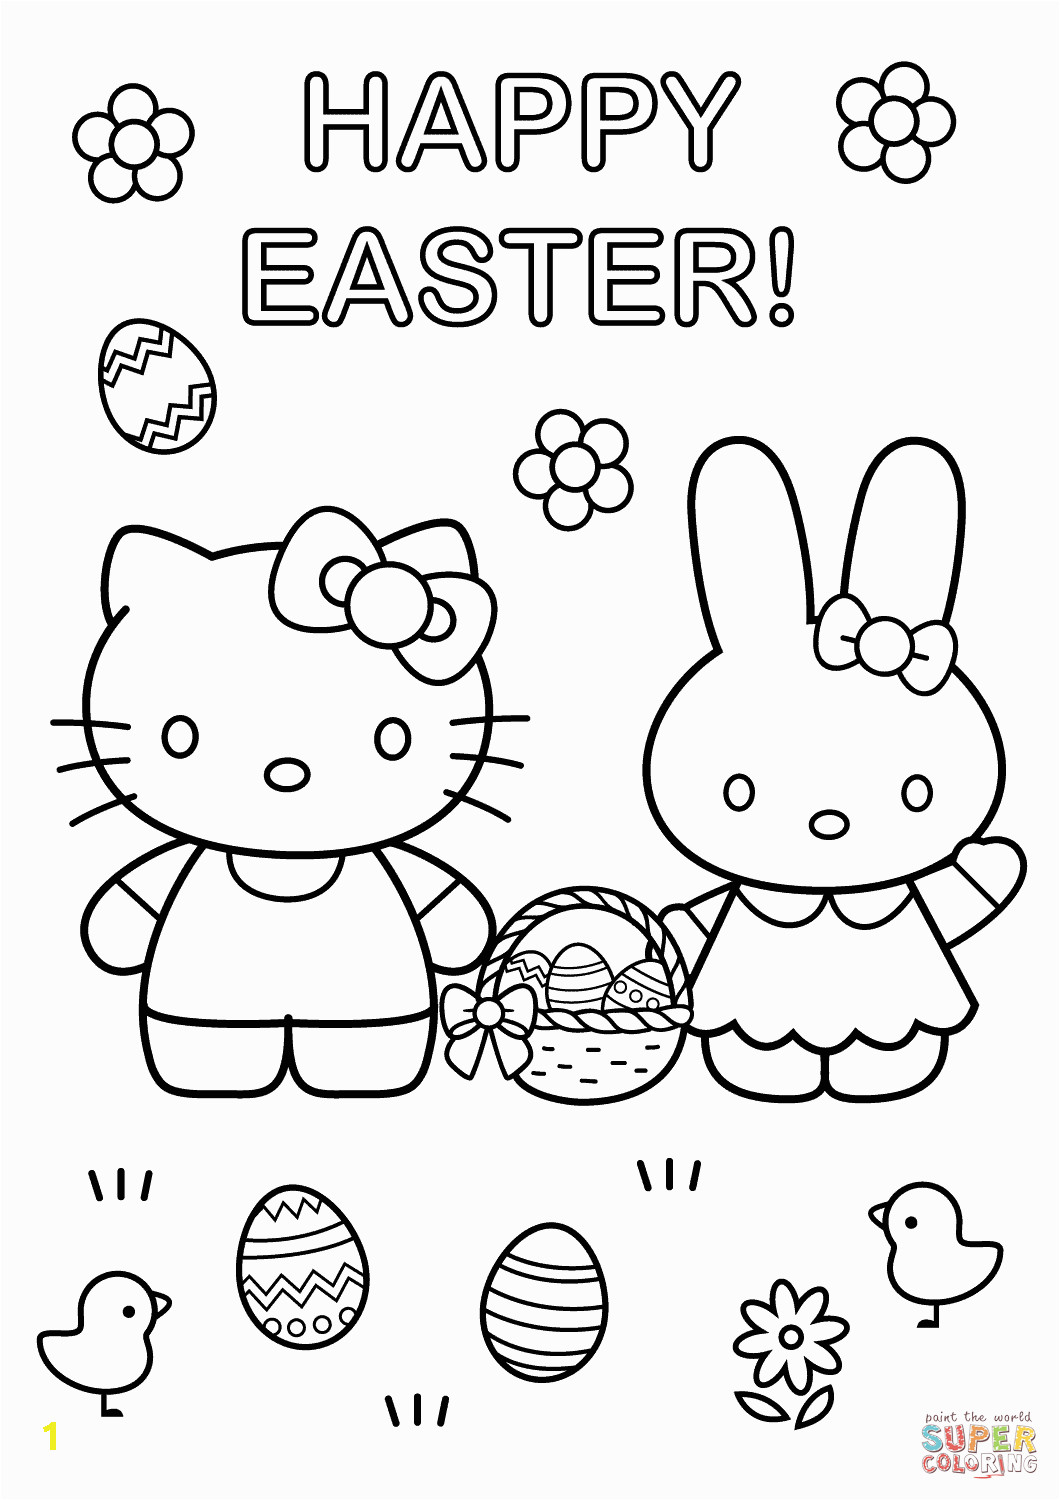 Coloring Pages Hello Kitty Quotes Hello Kitty with Easter Bunny Coloring Page From Hello Kitty